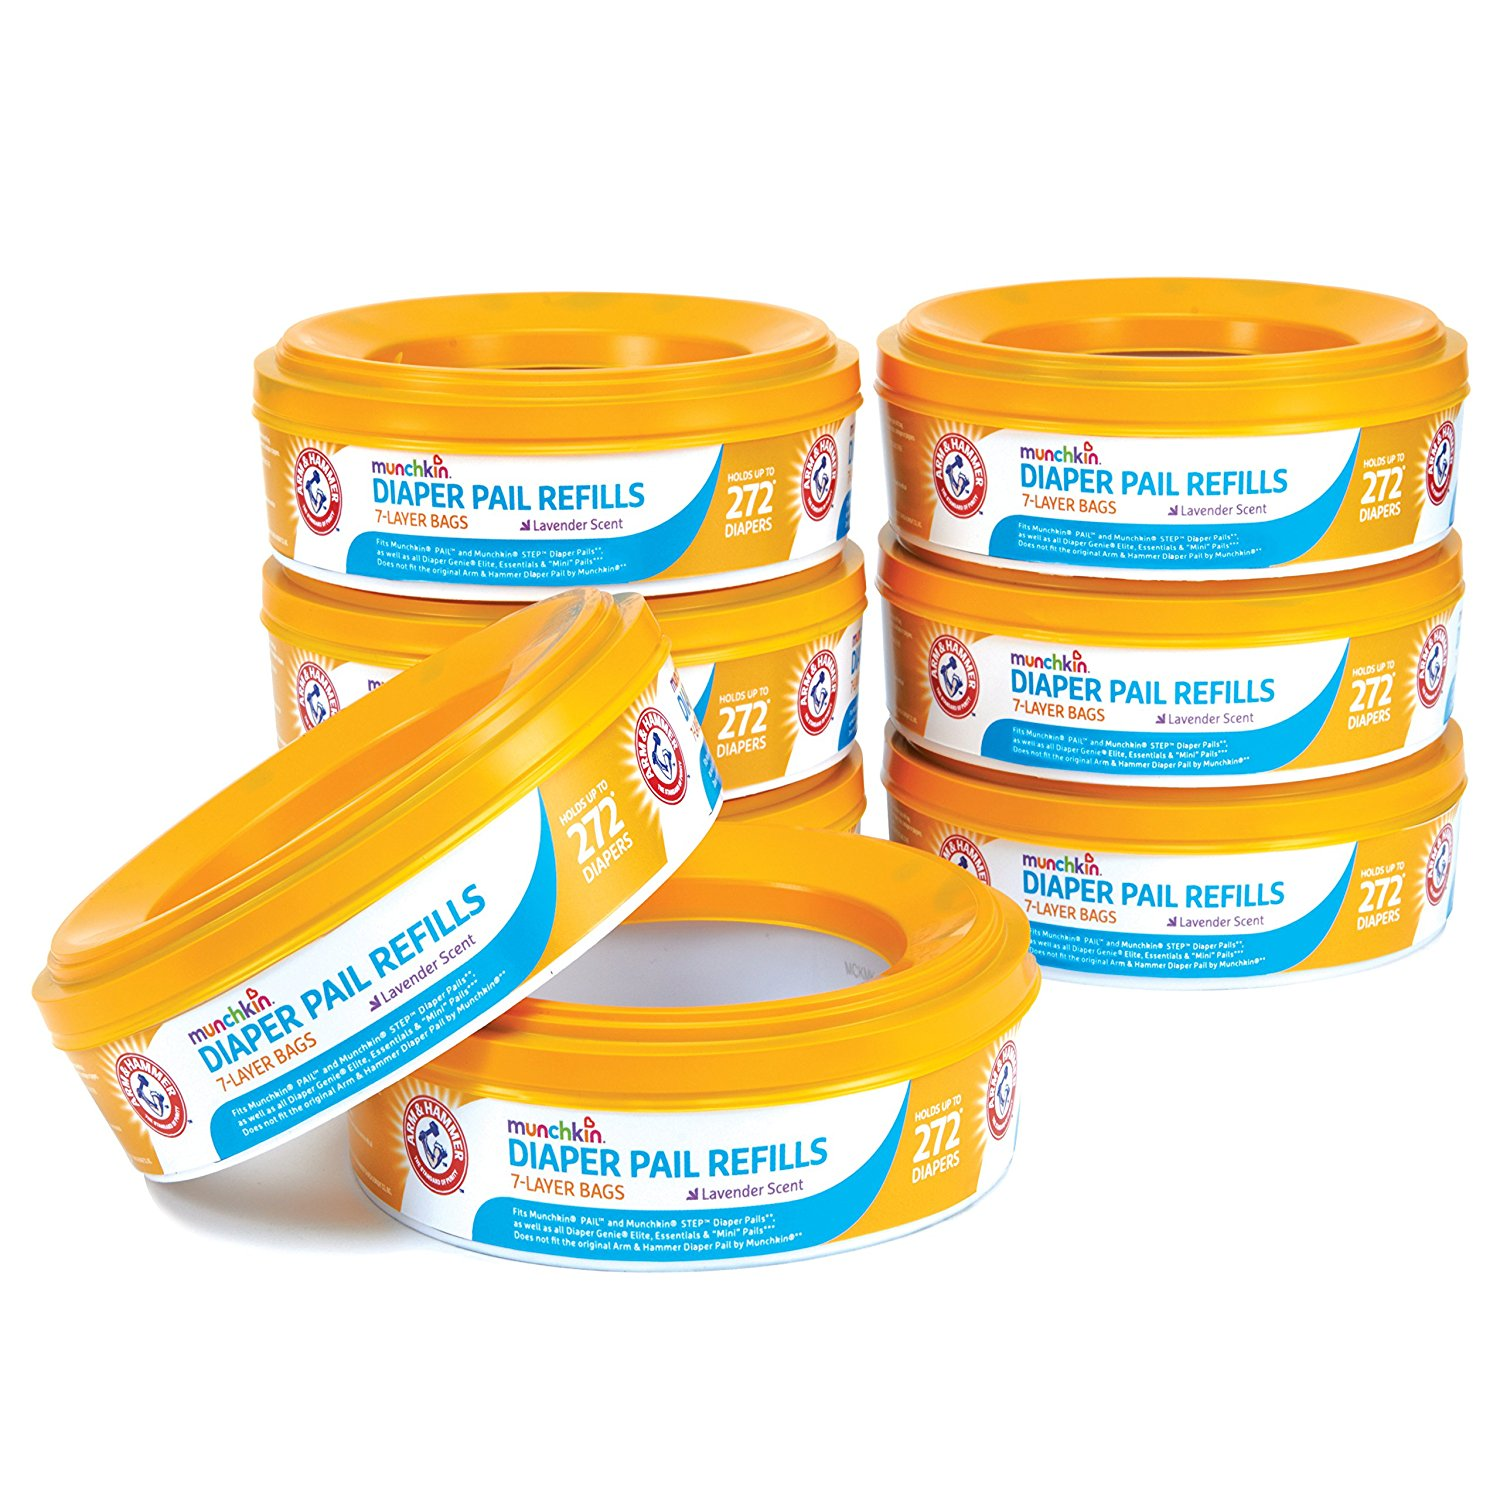 Arm and Hammer Diaper Pail Refill Rings, 2,176 Count, 8 Pack (holds up to 2,176 newborn diapers) By Munchkin From USA